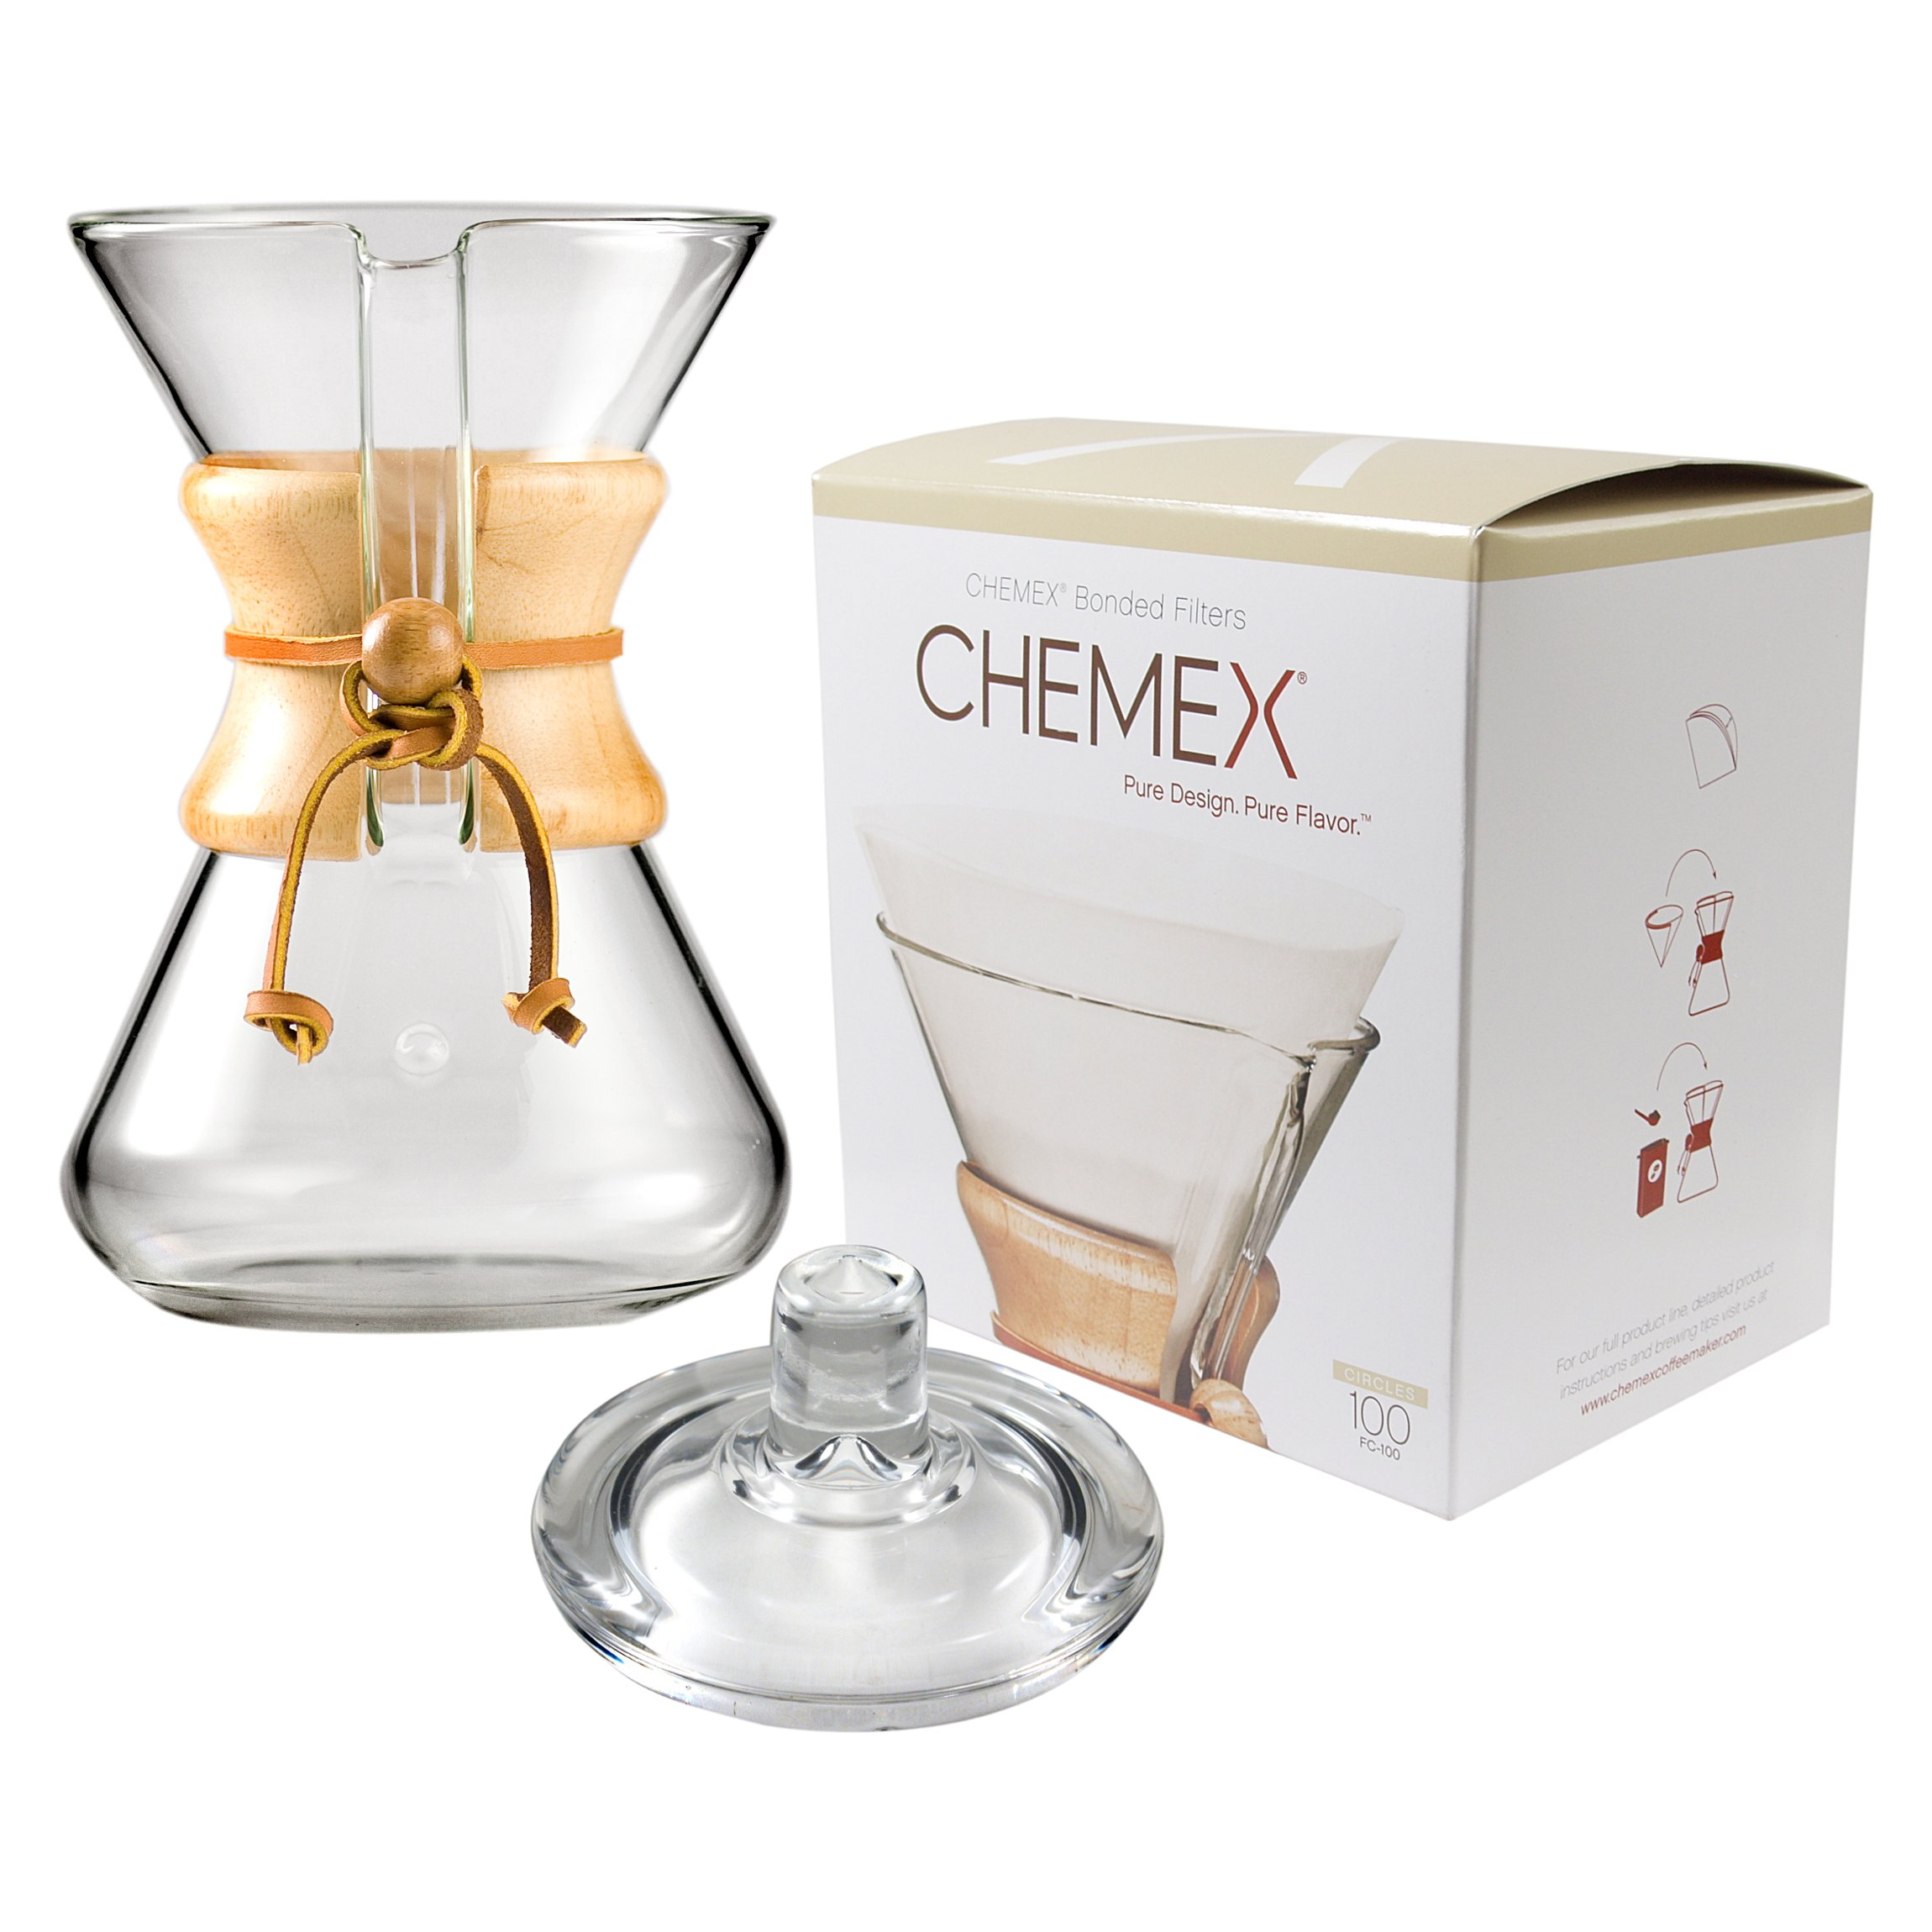 Chemex Classic Wood Collar and Tie Glass 30 Ounce Coffee Maker with Cover and 100 Count Bonded Circle Coffee Filters by Chemex (Image #1)